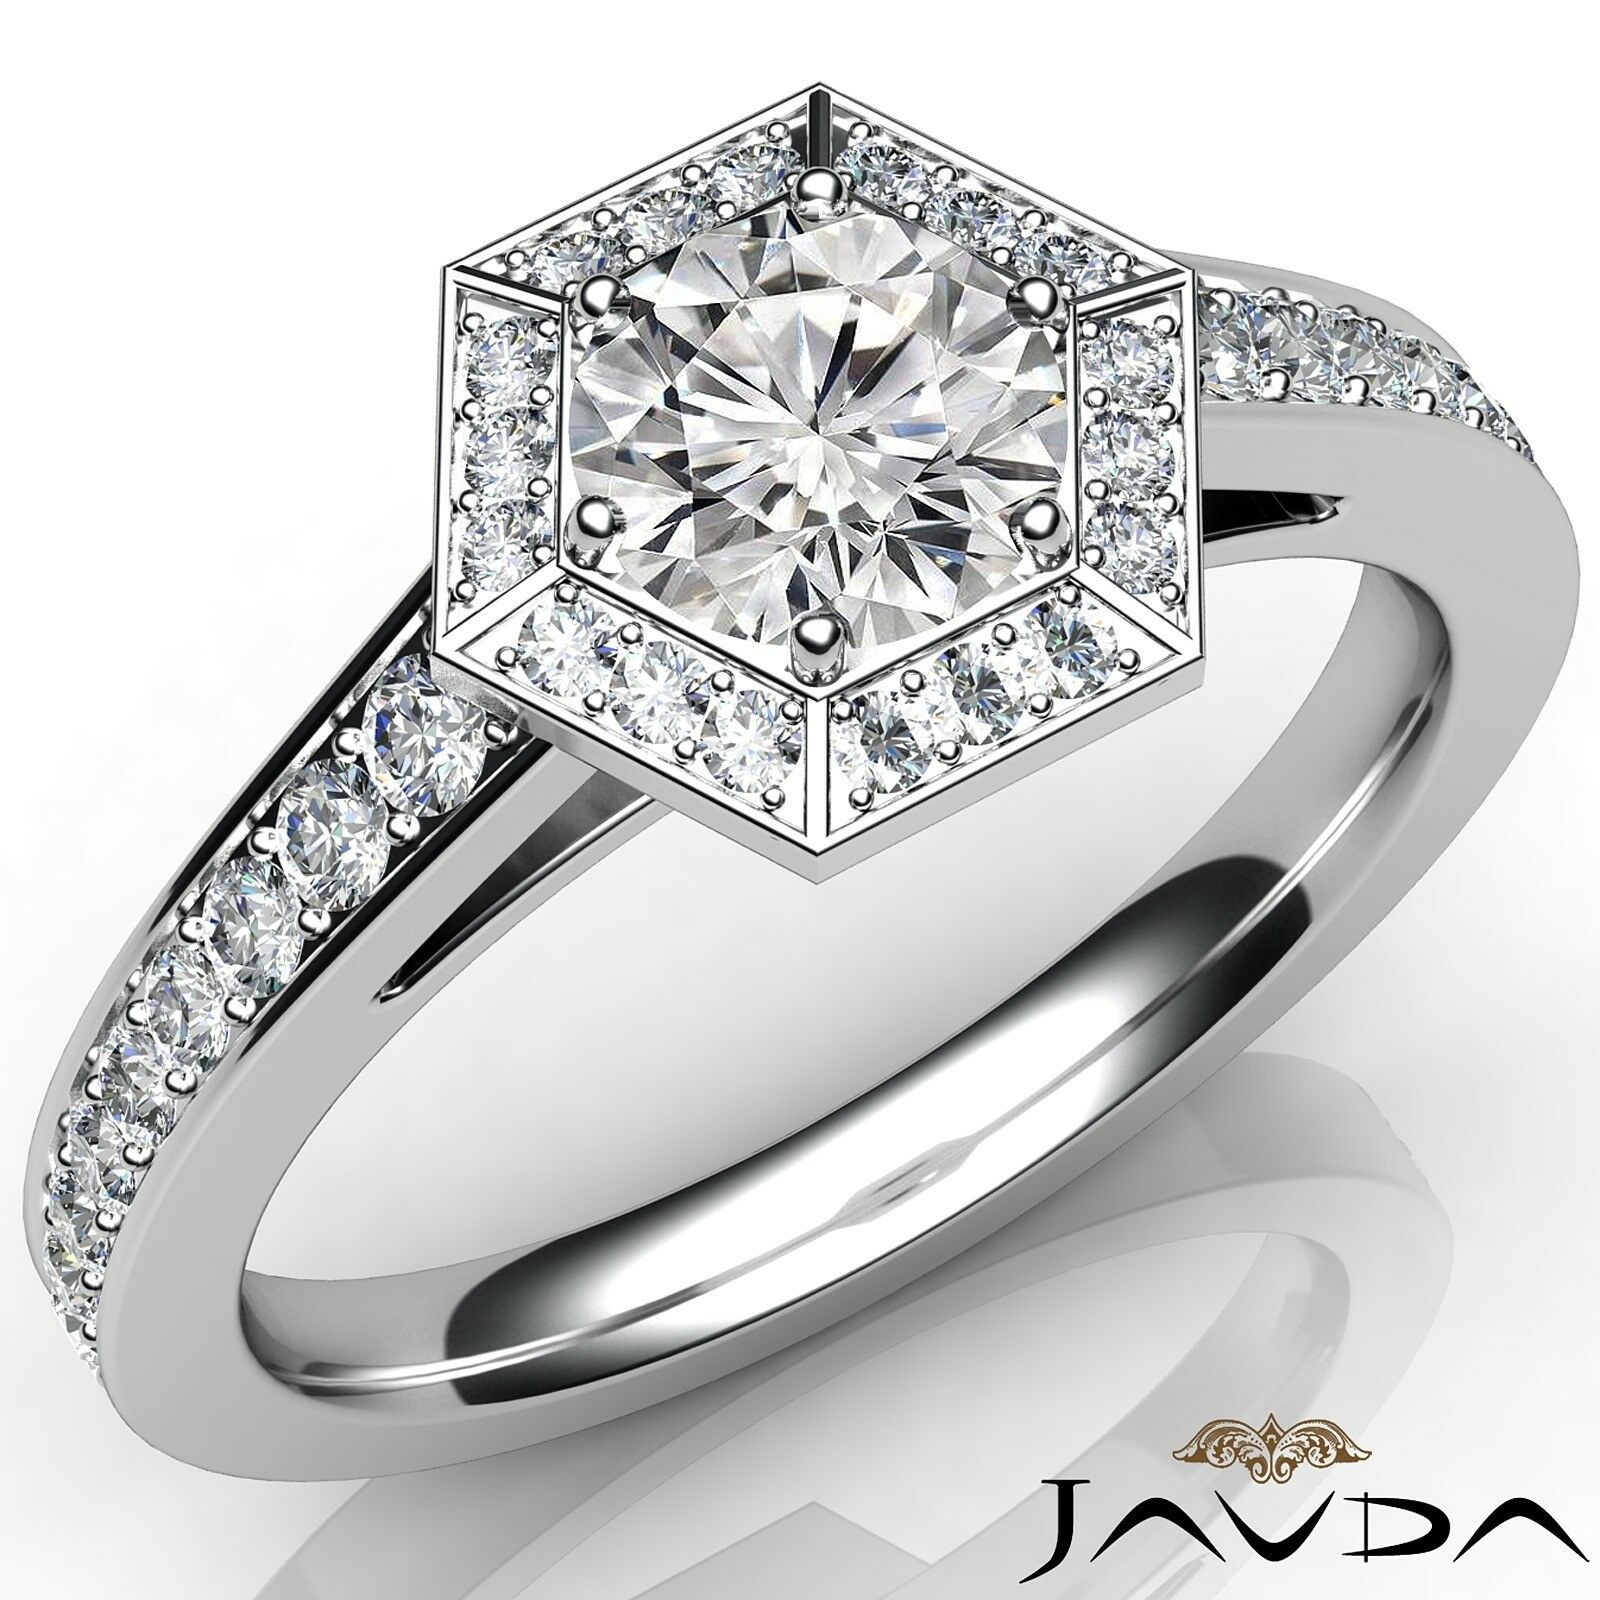 1.2ctw Comfort Fit Round Diamond Engagement Ring GIA E-VVS1 White Gold Women New